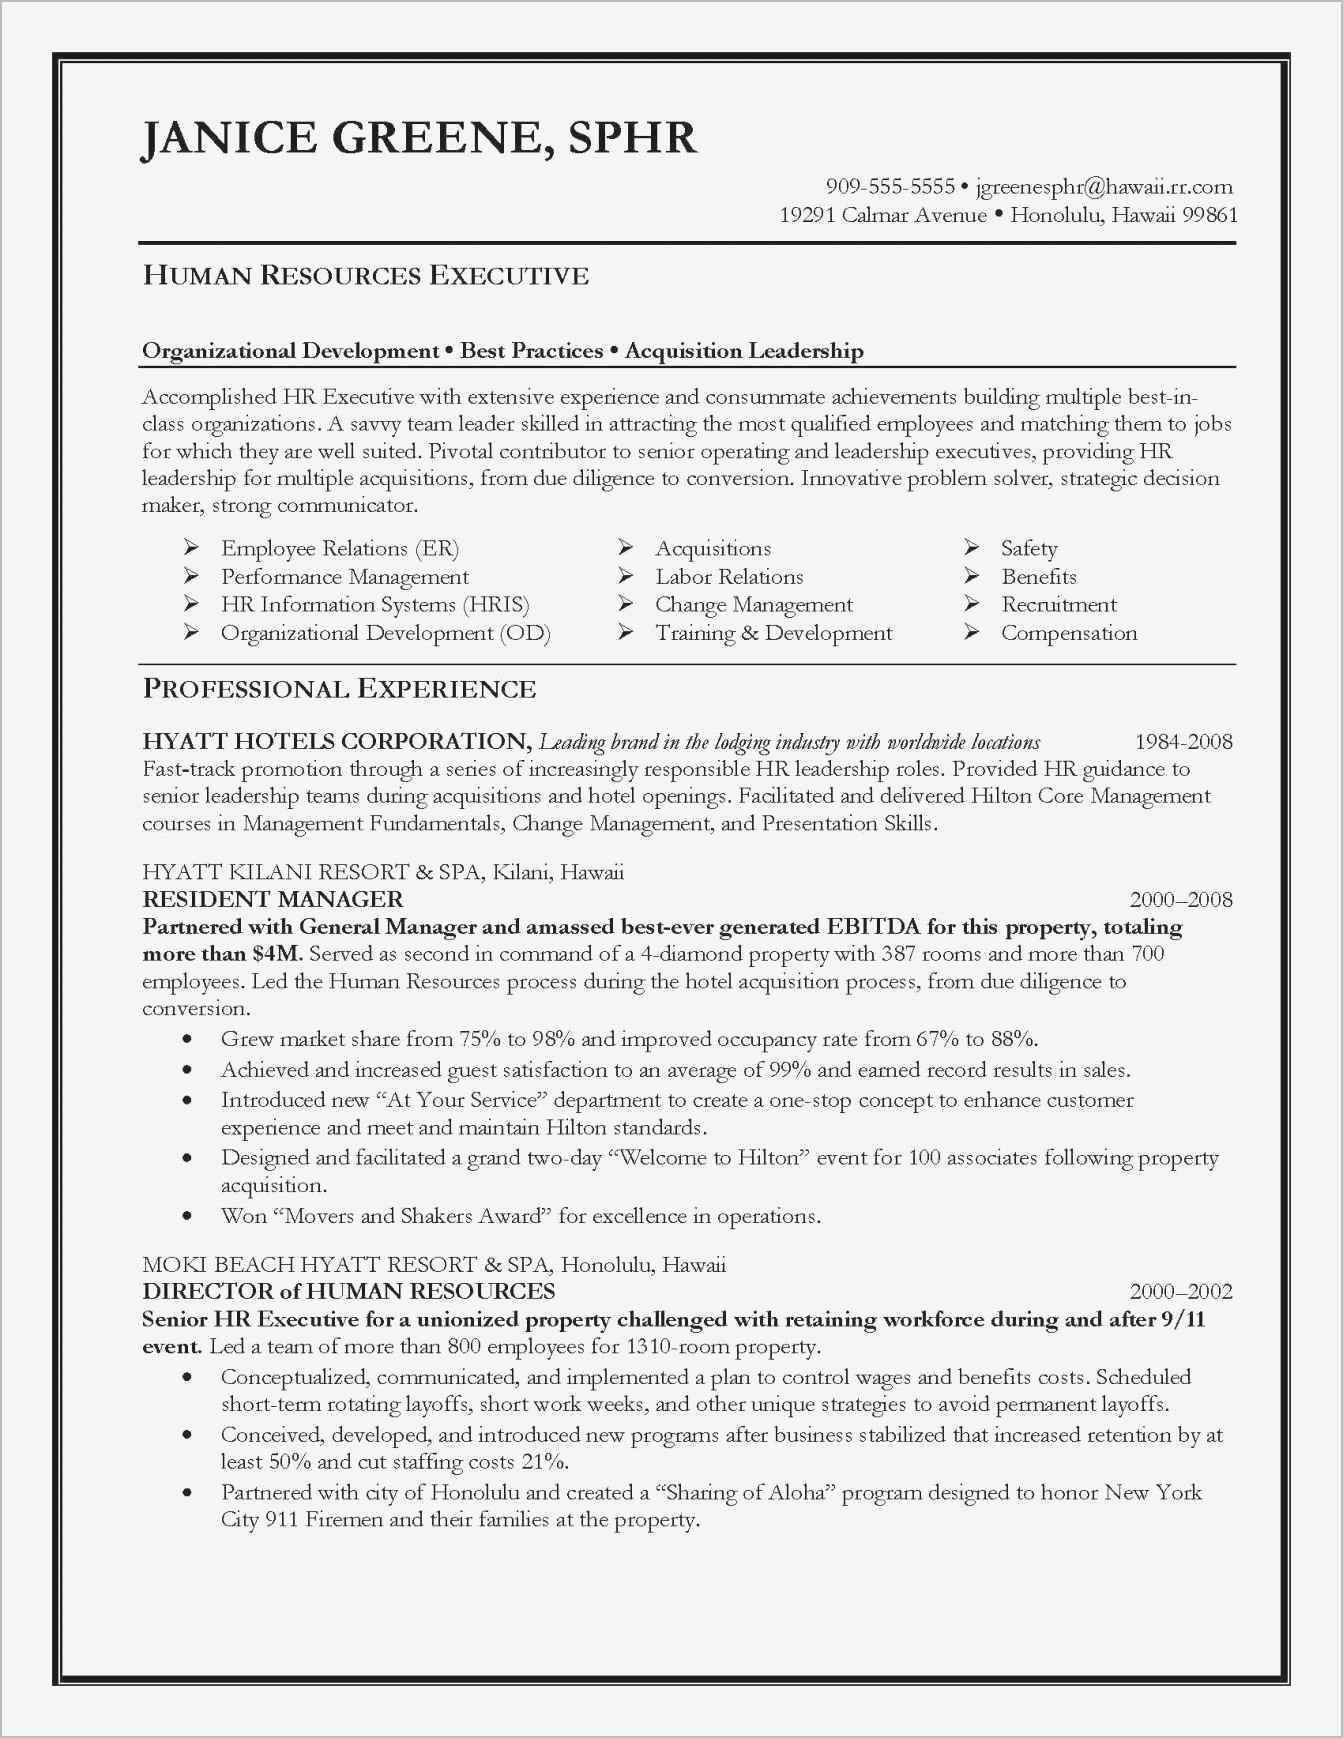 Is My Perfect Resume Safe - How to Write A Resume Experience Save How to Write Resumes Beautiful